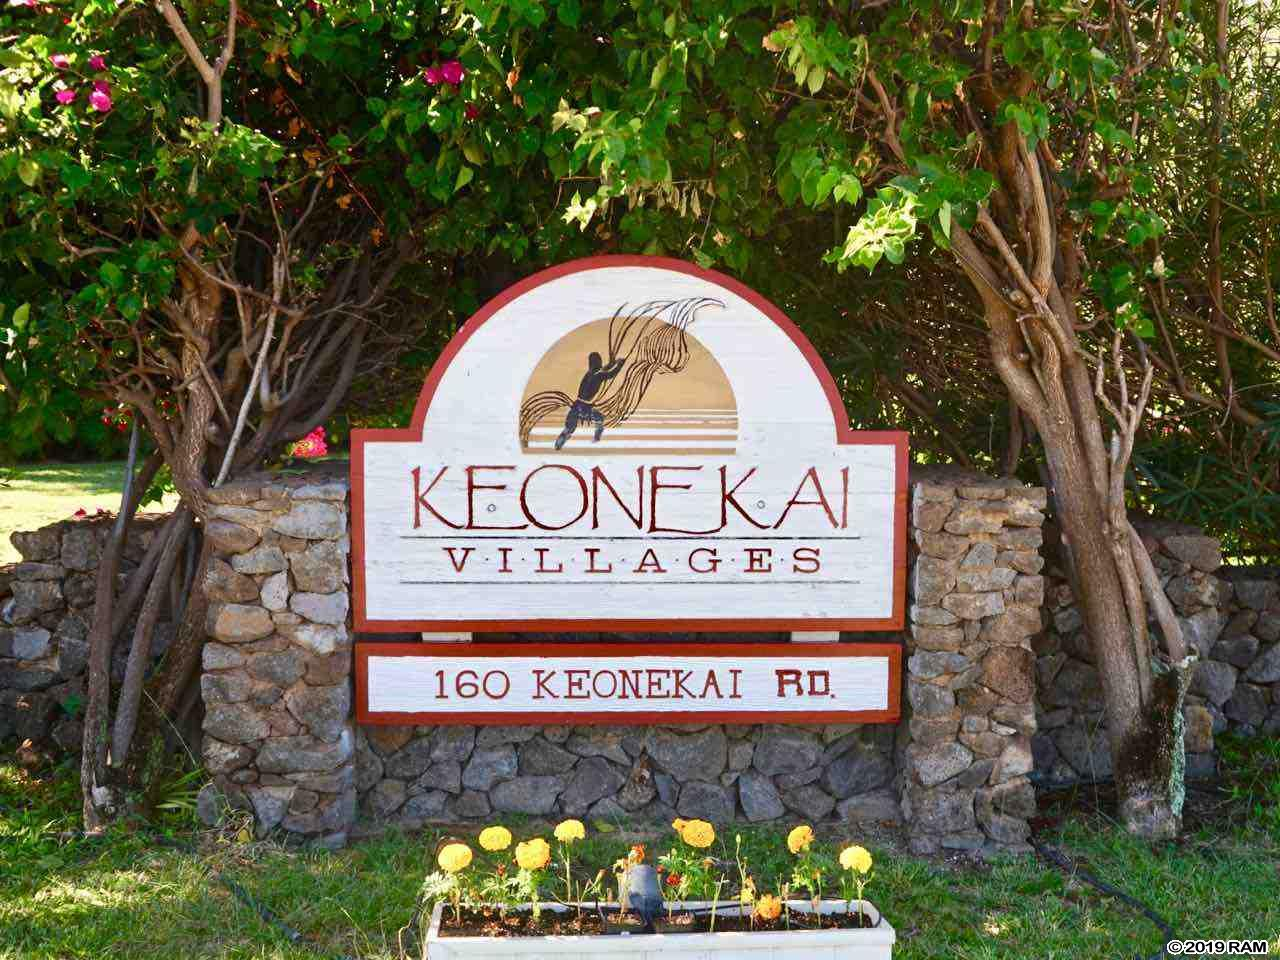 Keonekai Villages #14-107 in Kamaole III